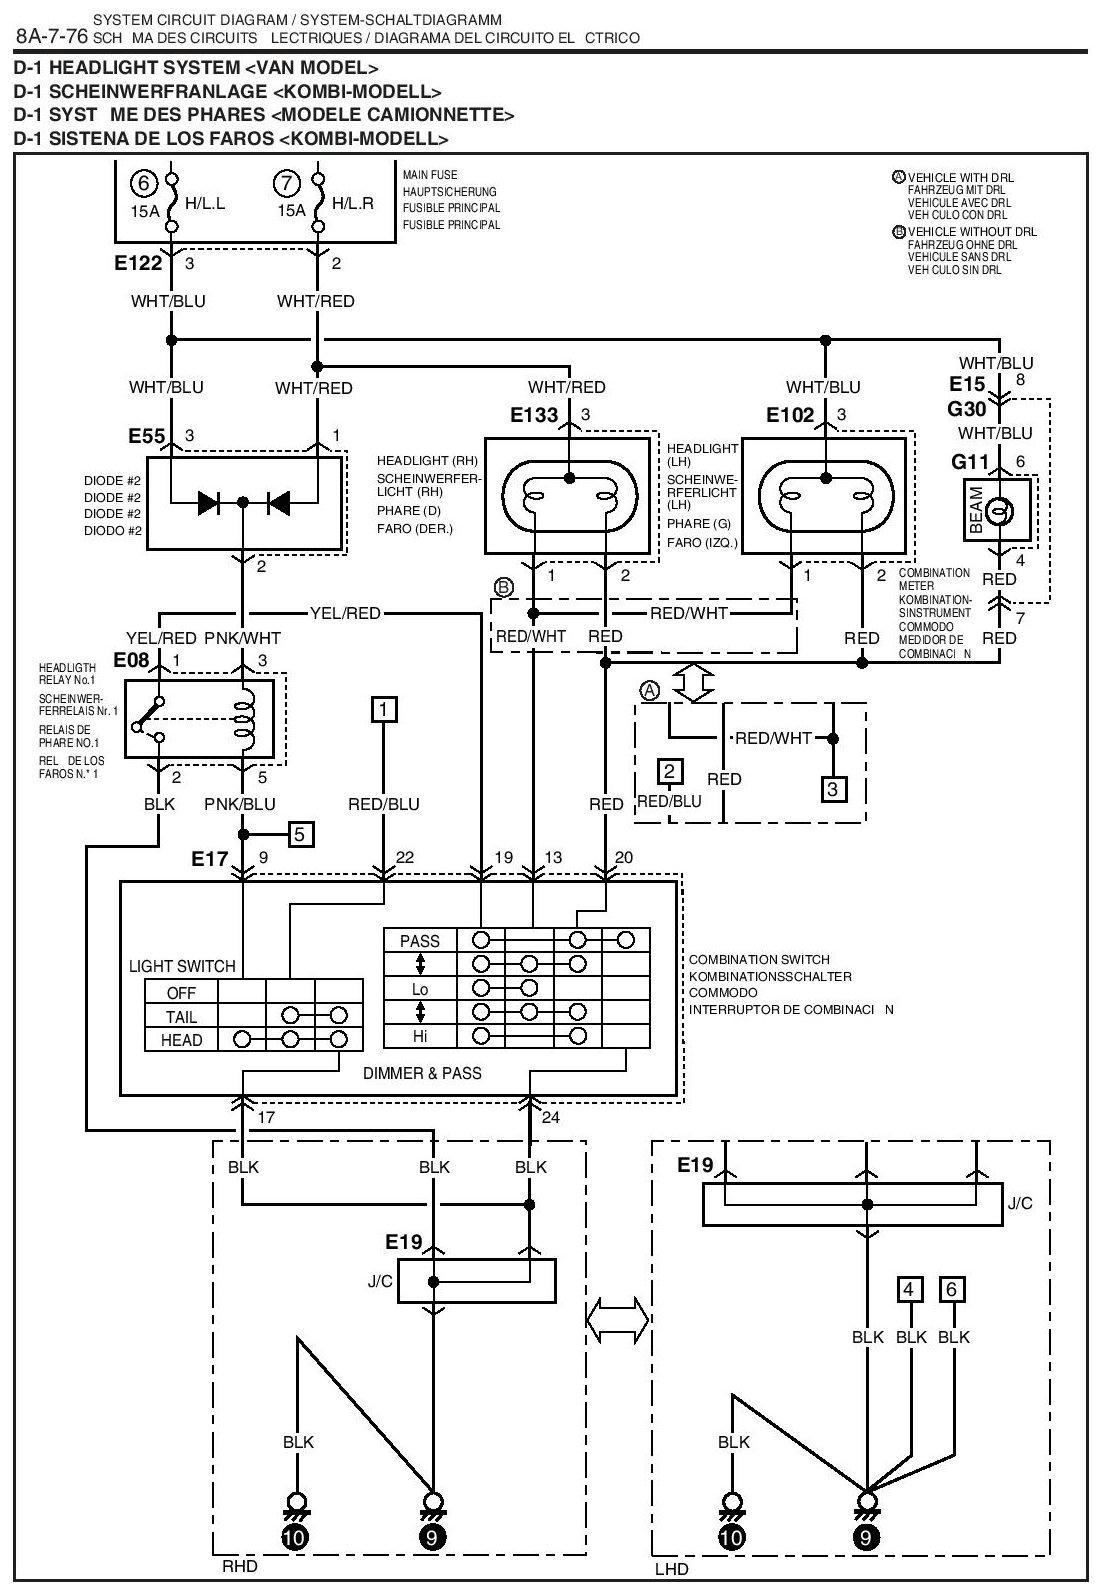 Suzuki Grand Vitara Electrical Wiring Diagram Auto Related With